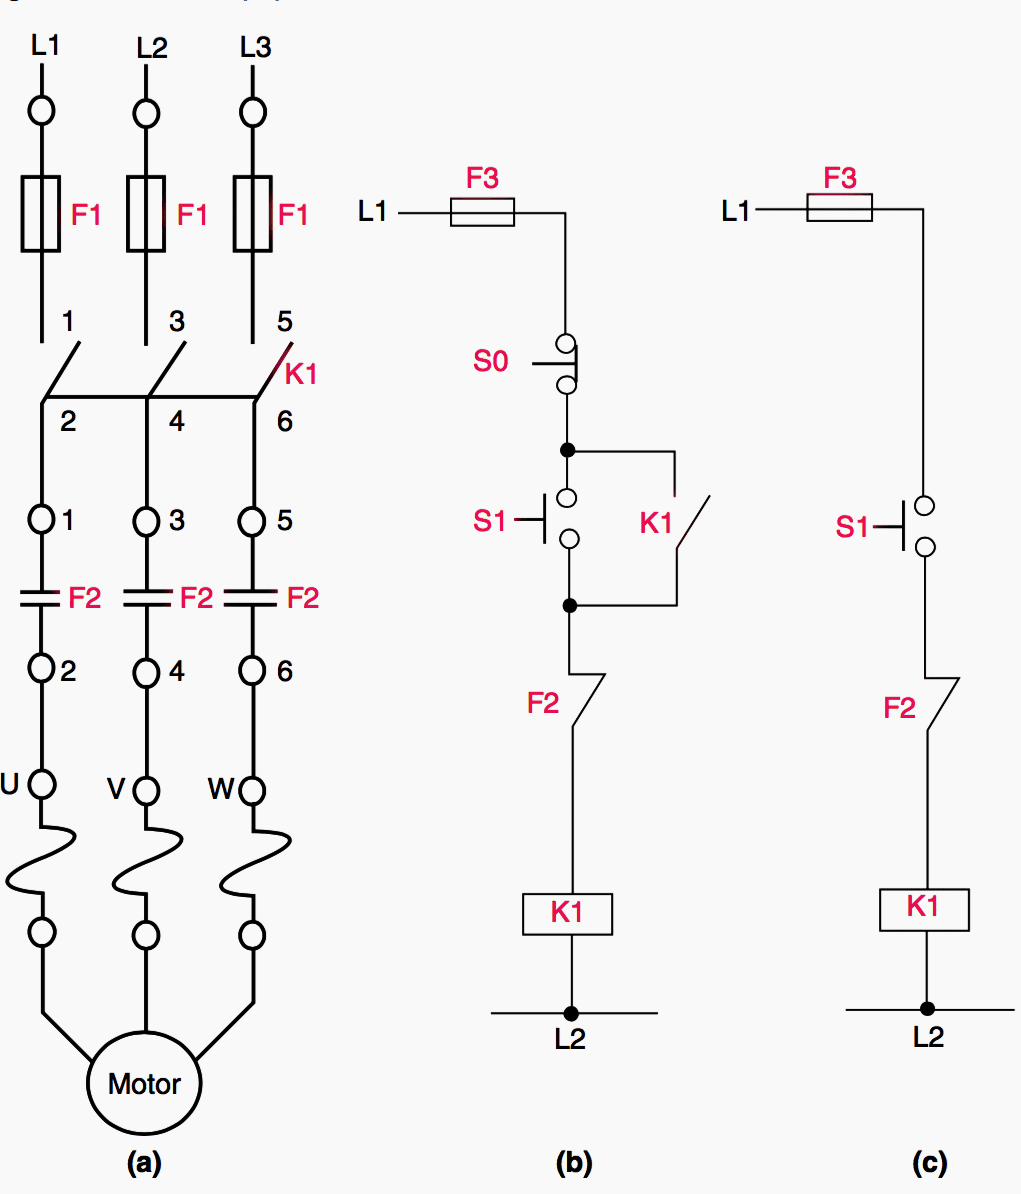 Basic control circuit for DOL (direct-on-line) starter